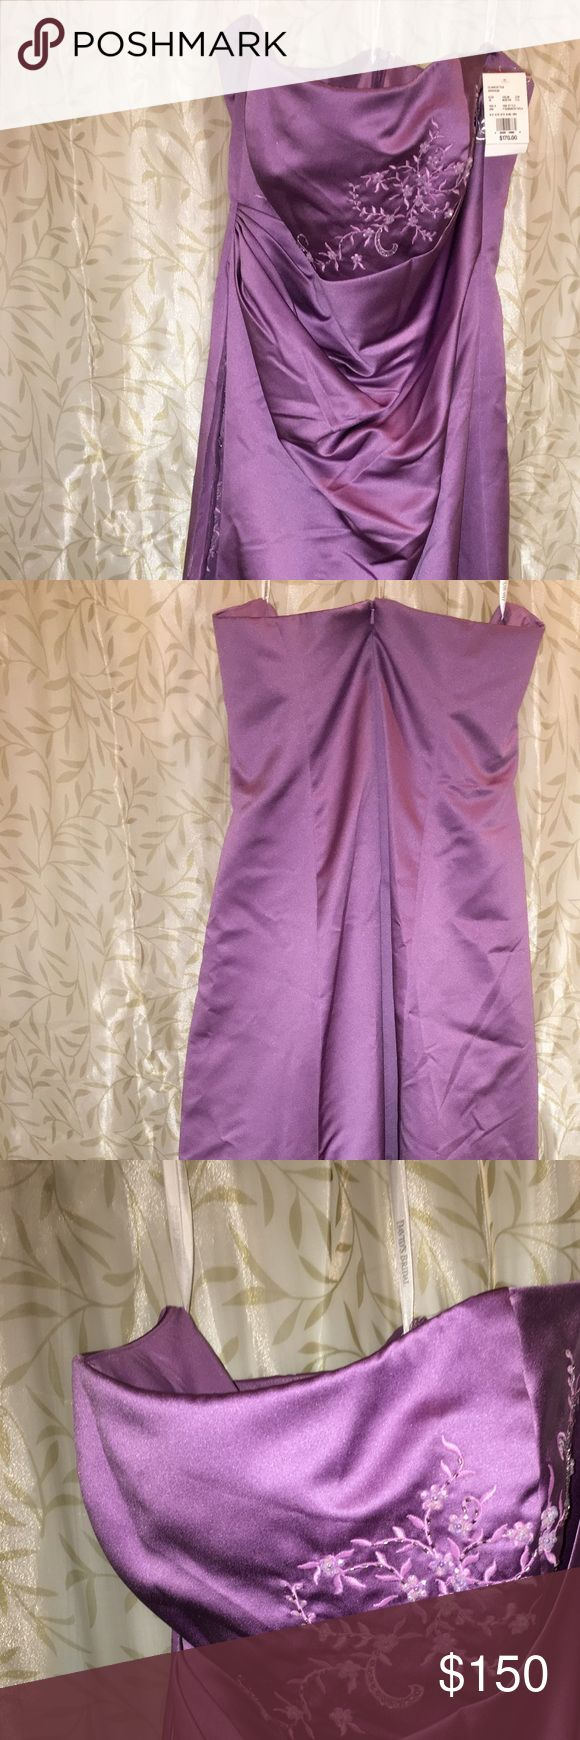 David bridal formal or bridesmaid gown This is a full length, never been worn formal or bridesmaid gown from davids bridal. The color is wisteria close to a light purple with cascading sequences. This dress has removable spaghetti straps & extra sequences in case any come close. Closure includes a full zipper back with eye hook & extra clasp hook in the inside. The bodice has a slight bone to shape the upper area. David's Bridal Dresses Wedding